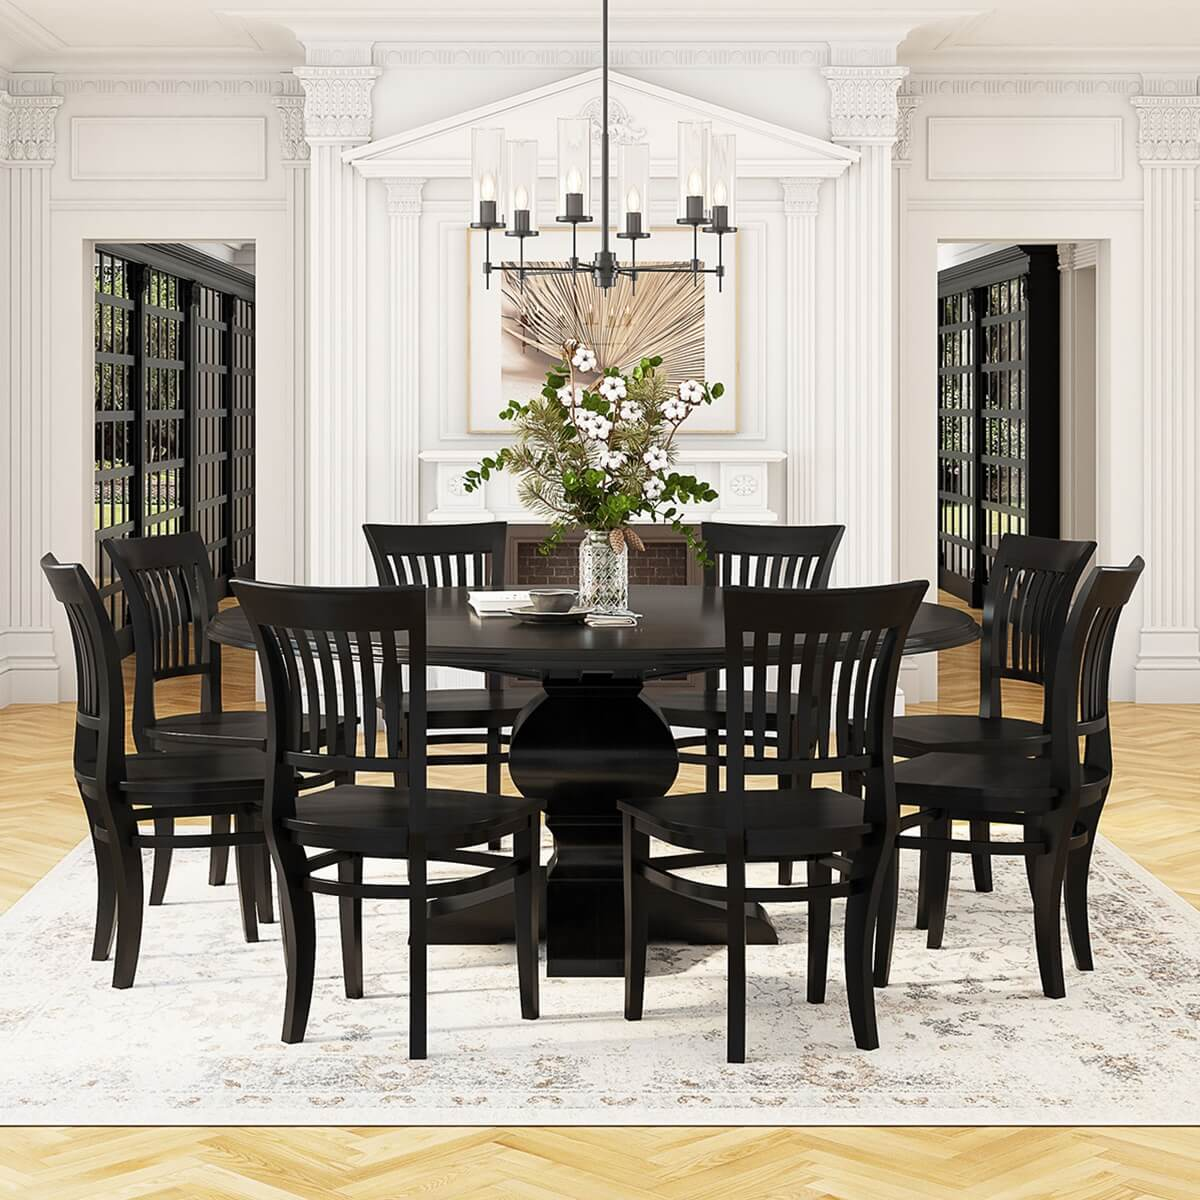 Rustic Dining Room Table Sets: Sierra Nevada Large Round Rustic Solid Wood Dining Table